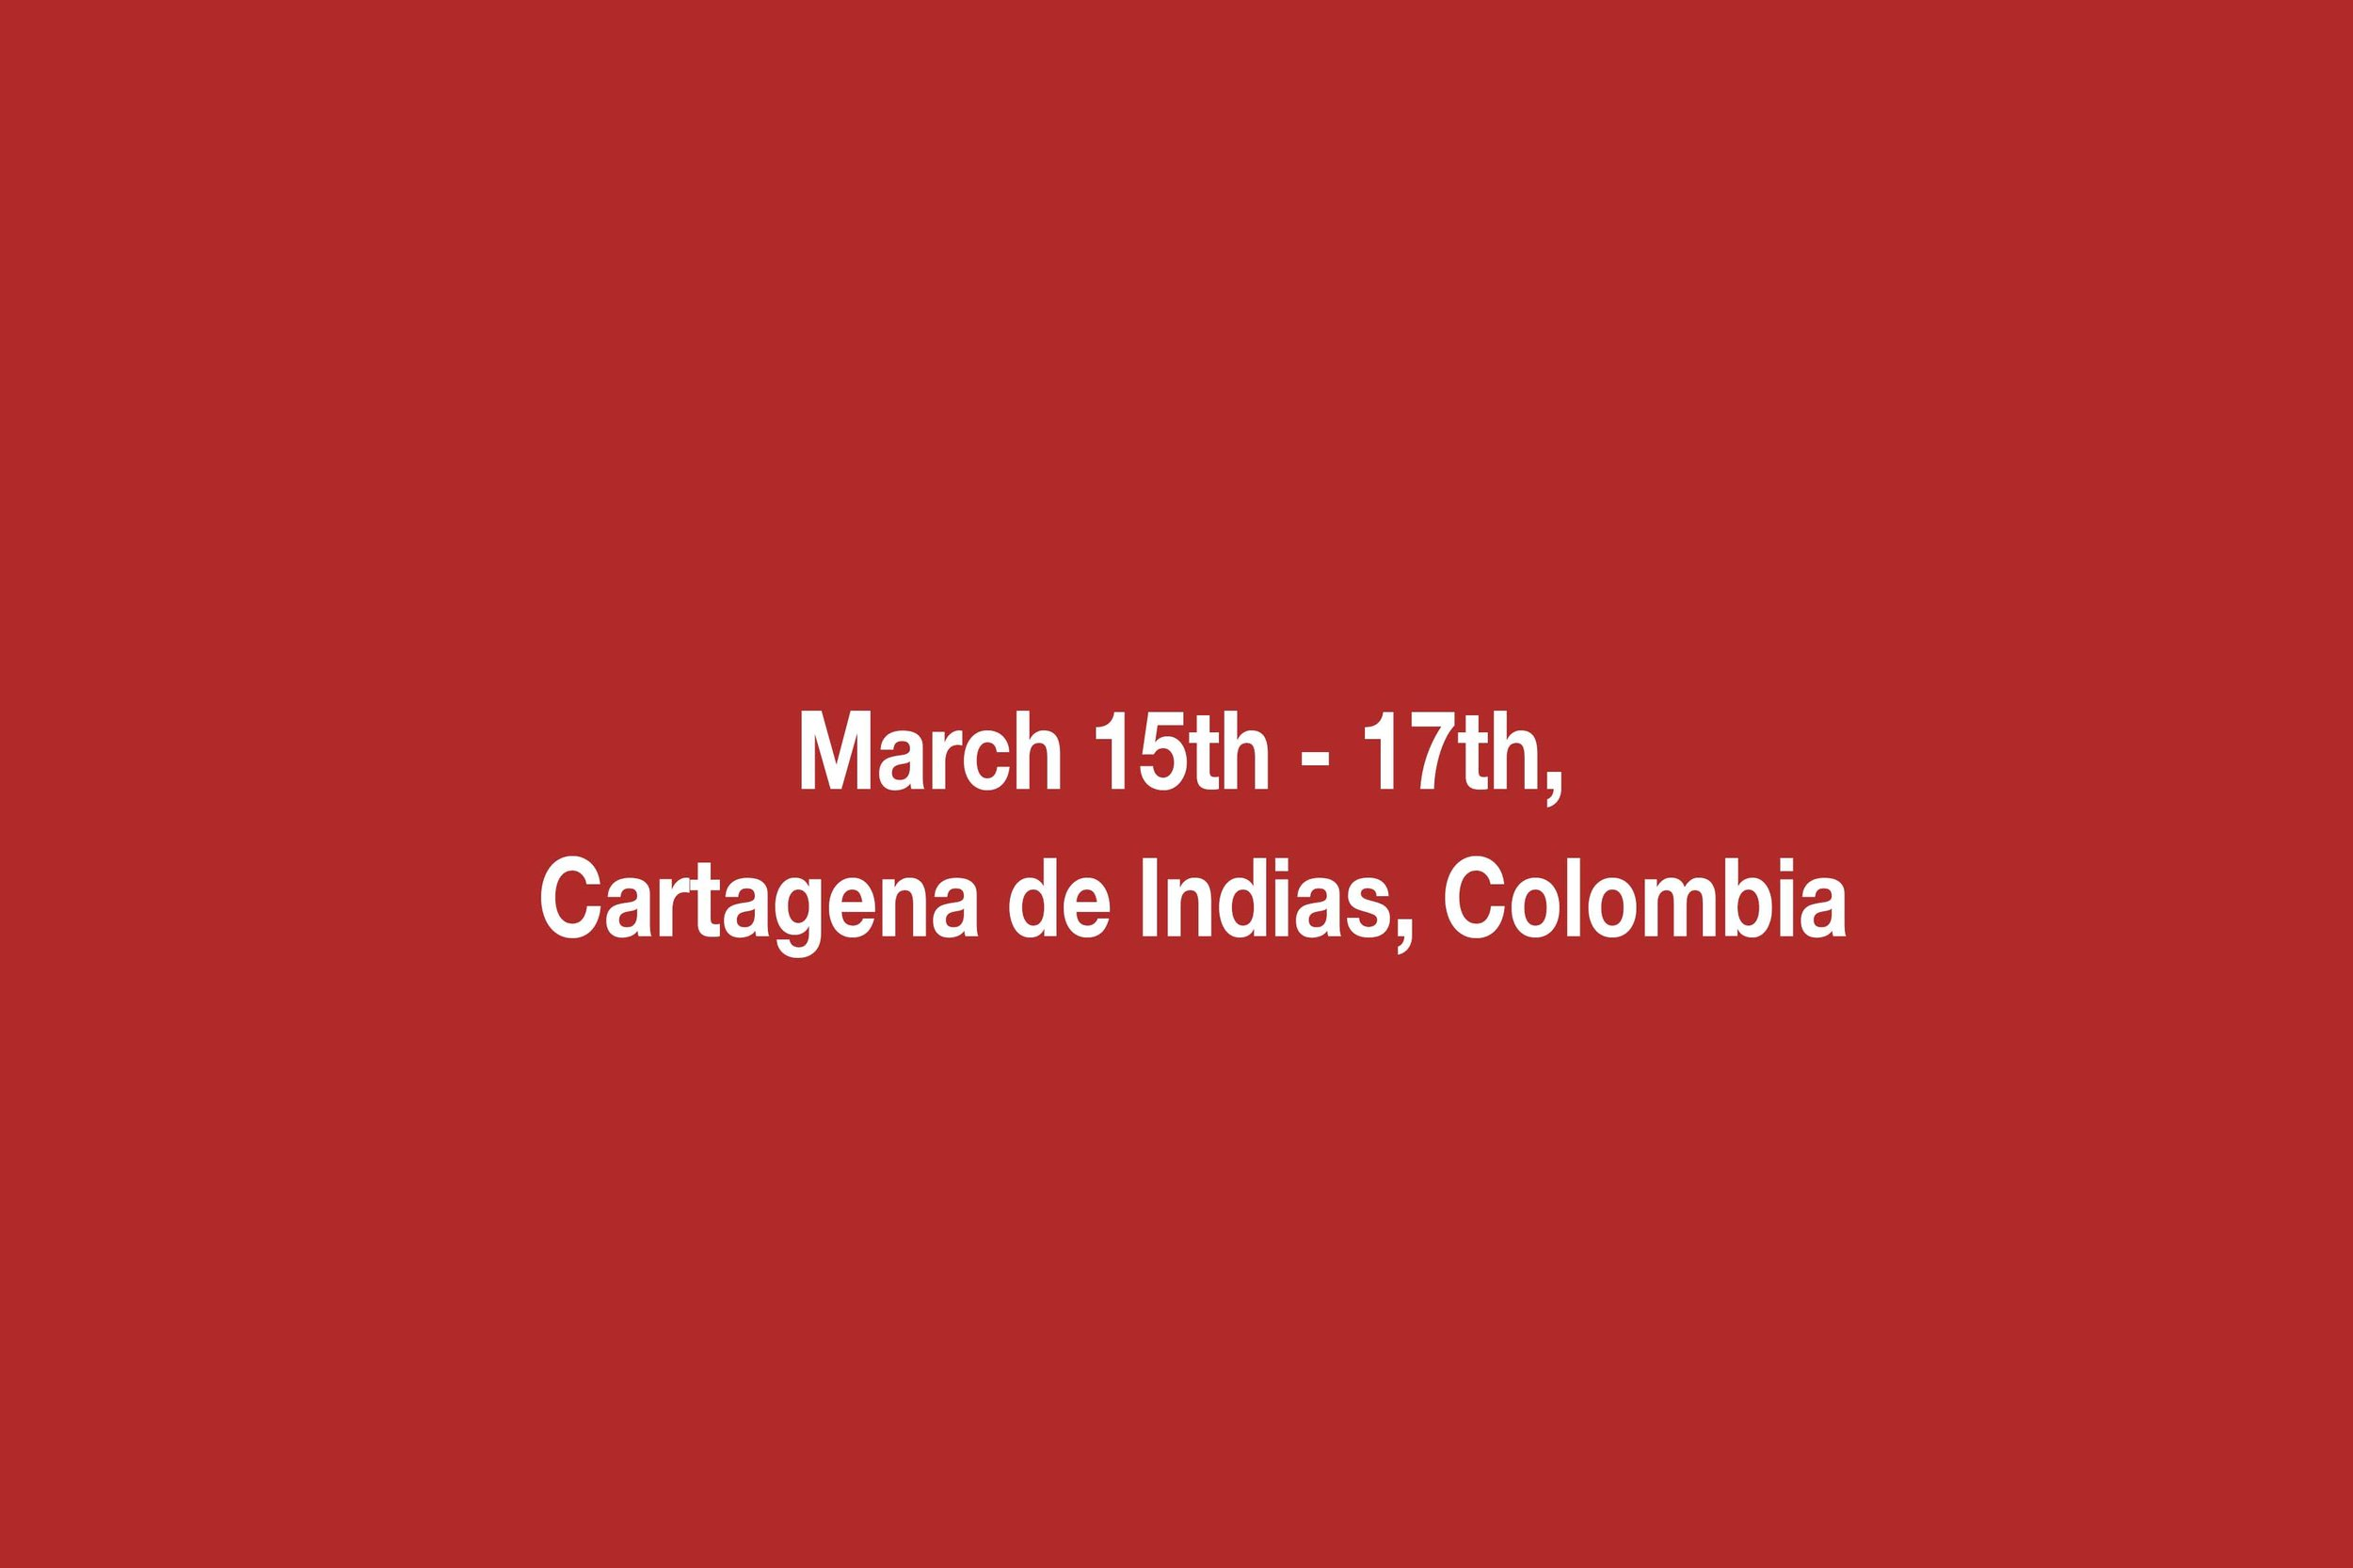 - Fotona will be exhibiting at the 2018 IMCAS Americas World Congress in Cartagena de Indias, Colombia.Visit our booth to find out more about Fotona's non-invasive TightSculpting™ procedure for simultaneous body sculpting & skin tightening, as well as our pioneering Fotona4D® facial rejuvenation procedure and minimally invasive gynecology solutions. For more information about this year's IMCAS America's congress, visit the official website.